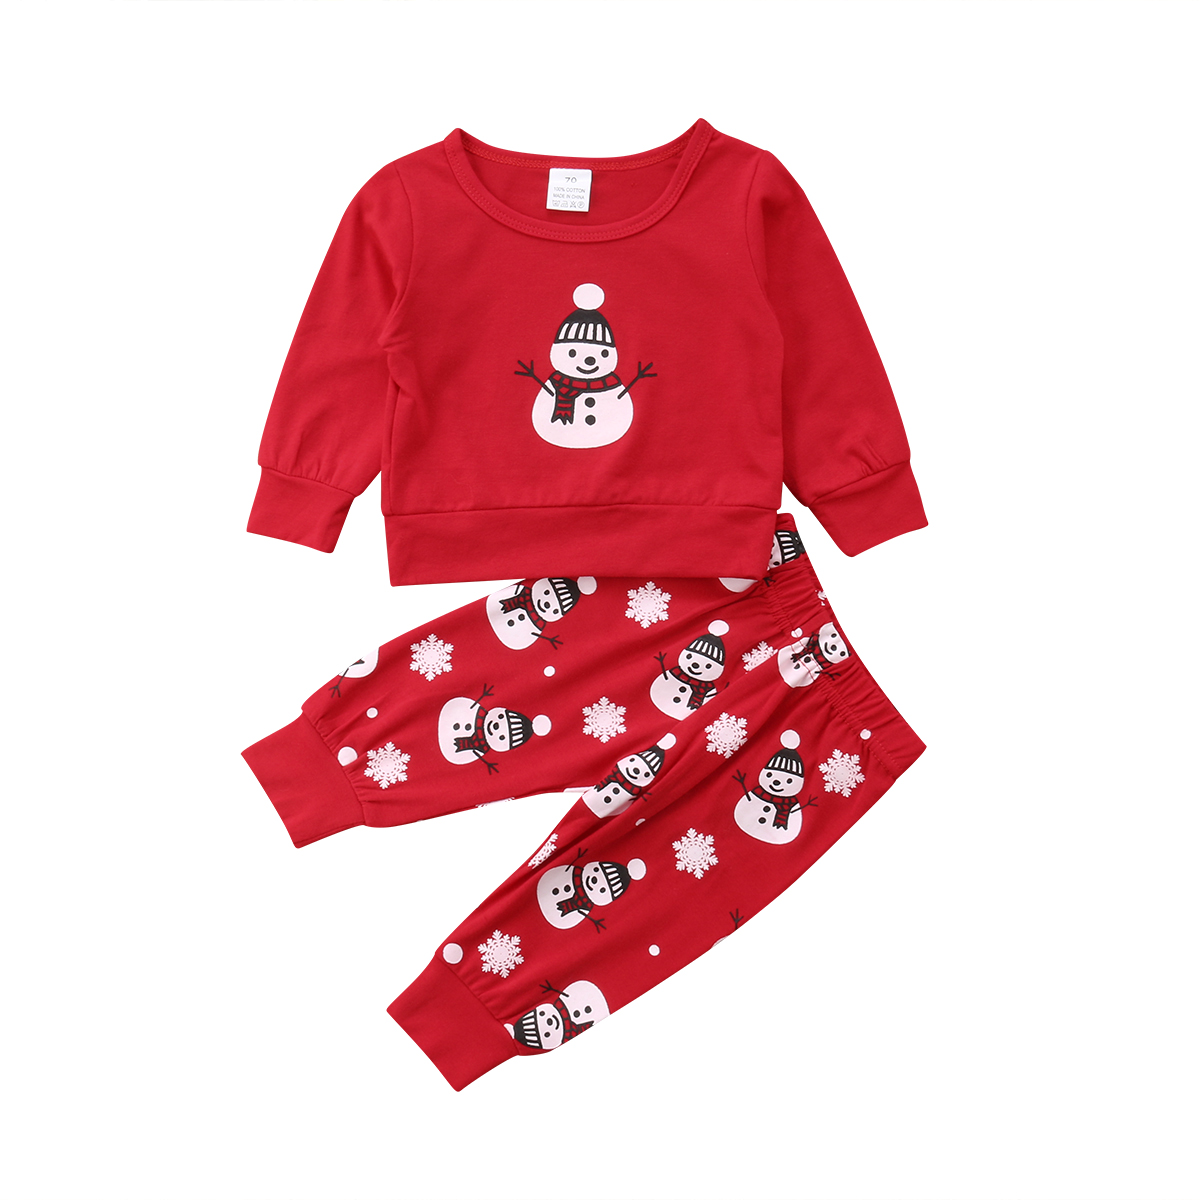 newest Christmas 2pcs Newborn Infant Baby Boy Girl clothes ...